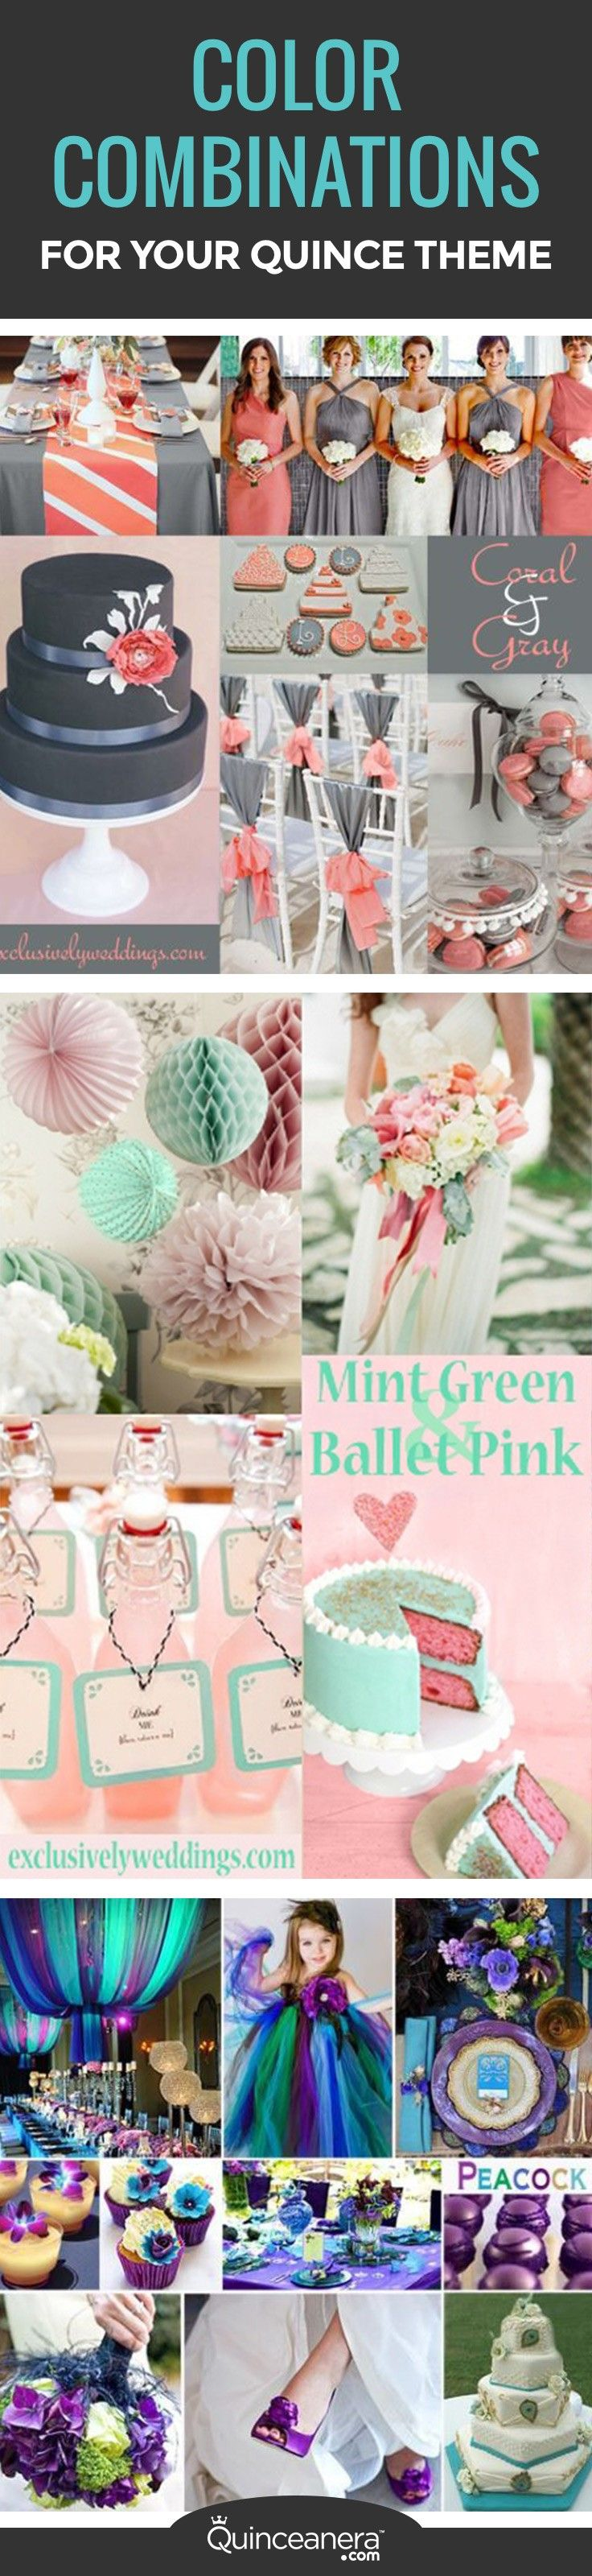 These color themes stand out from the traditional monotoned colors! Each theme has a personality that speaks for itself. Find the one that matches yours!:  - See more at: http://www.quinceanera.com/decorations-themes/how-to-combine-colors-for-a-quince-theme/?utm_source=pinterest&utm_medium=social&utm_campaign=article-011516-decorations-themes-how-to-combine-colors-for-a-quince-theme#sthash.7zVk3CUR.dpuf